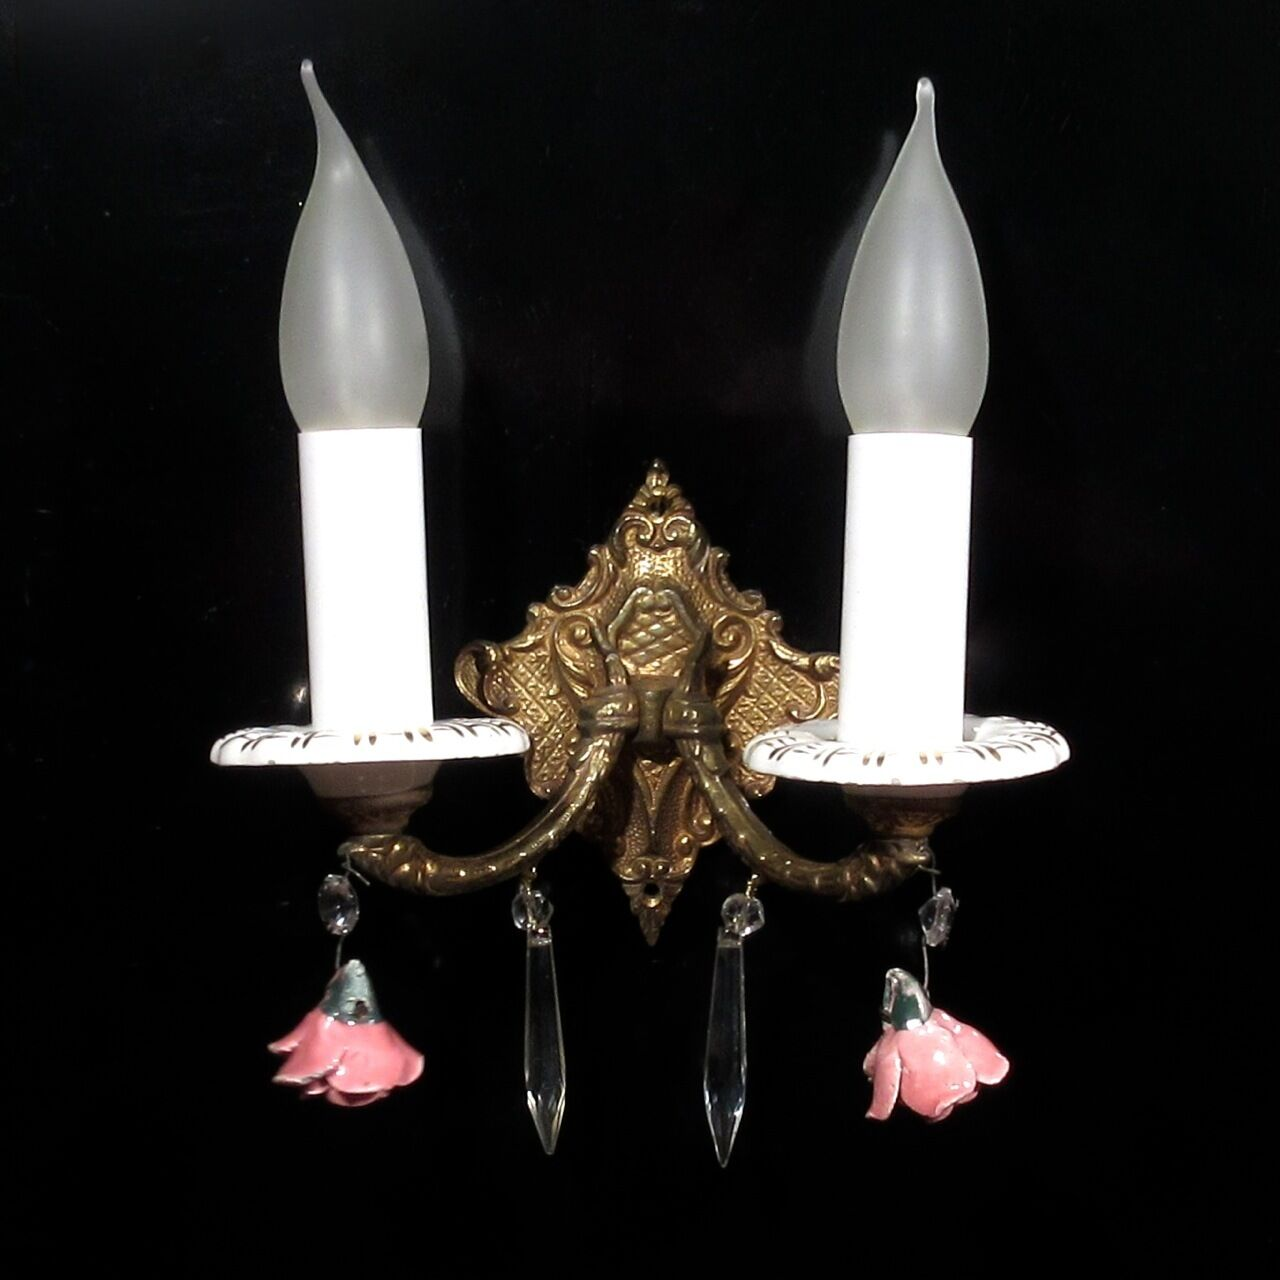 Vintage French Bronze Sconce, Crystal Prisms, Porcelain Flowers Roses & Bobeches